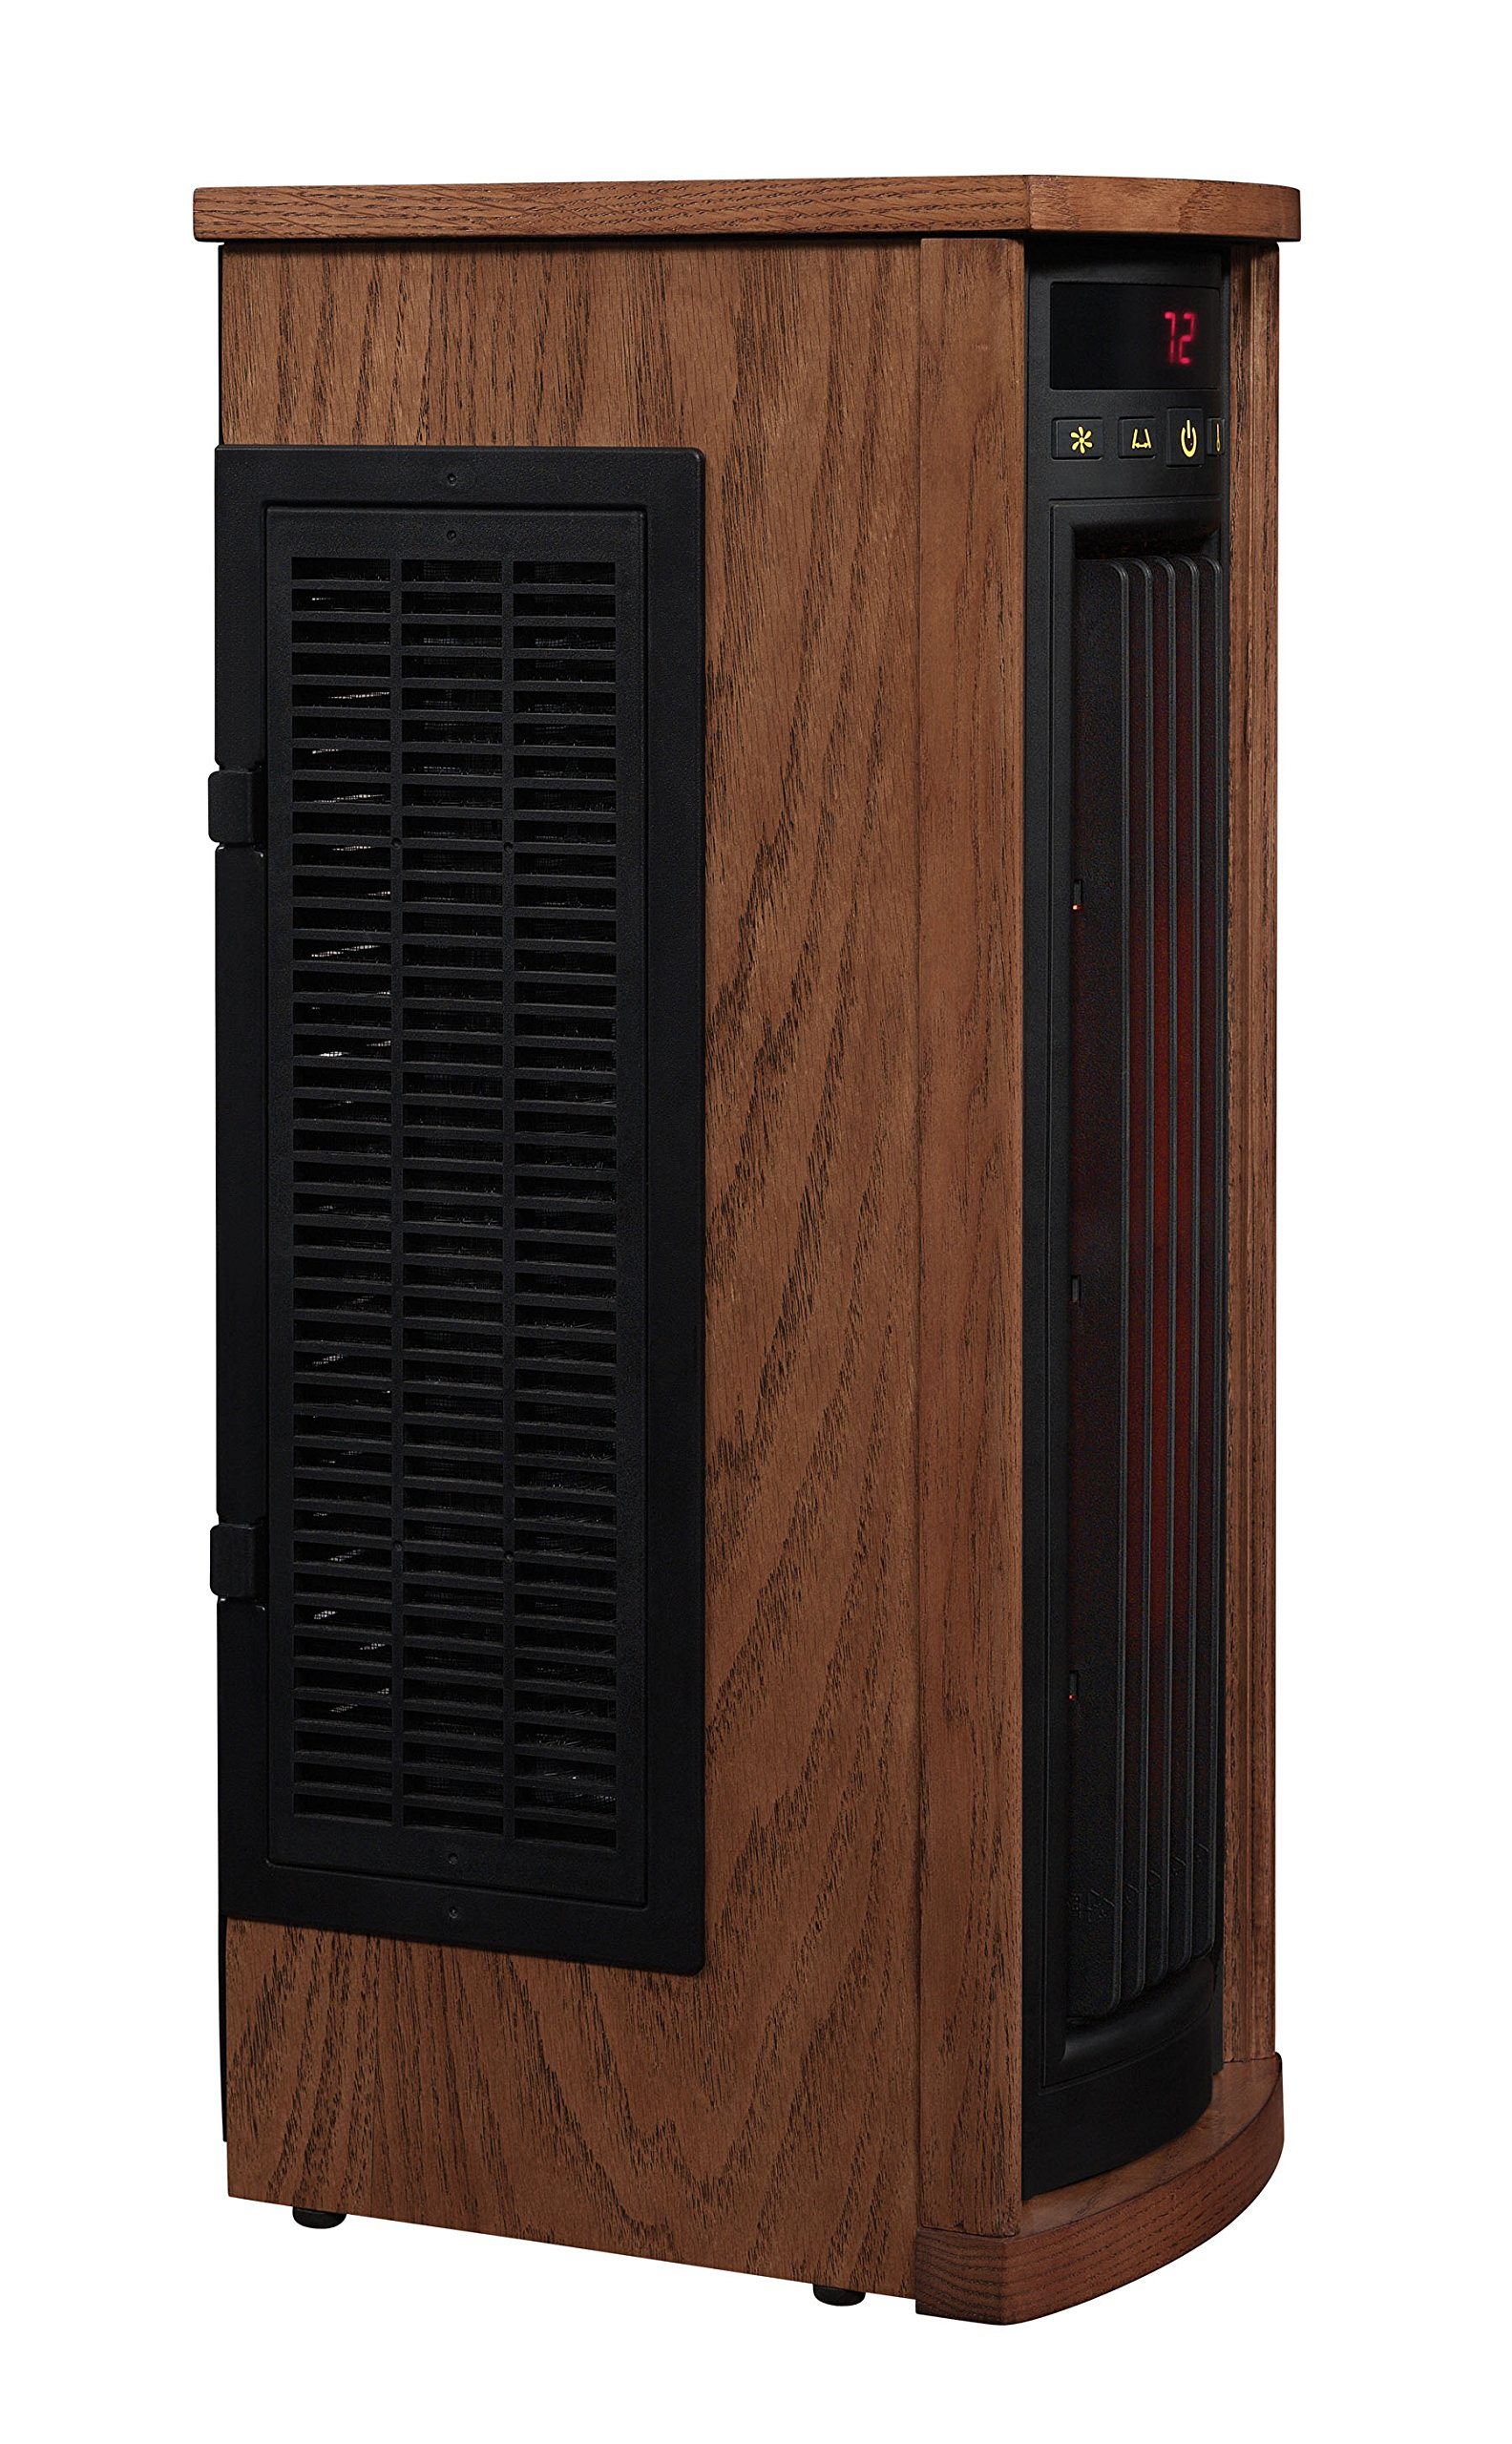 Duraflame 5HM8000-O142 Portable Electric Infrared Quartz Oscillating Tower Heater, Oak by Duraflame (Image #2)